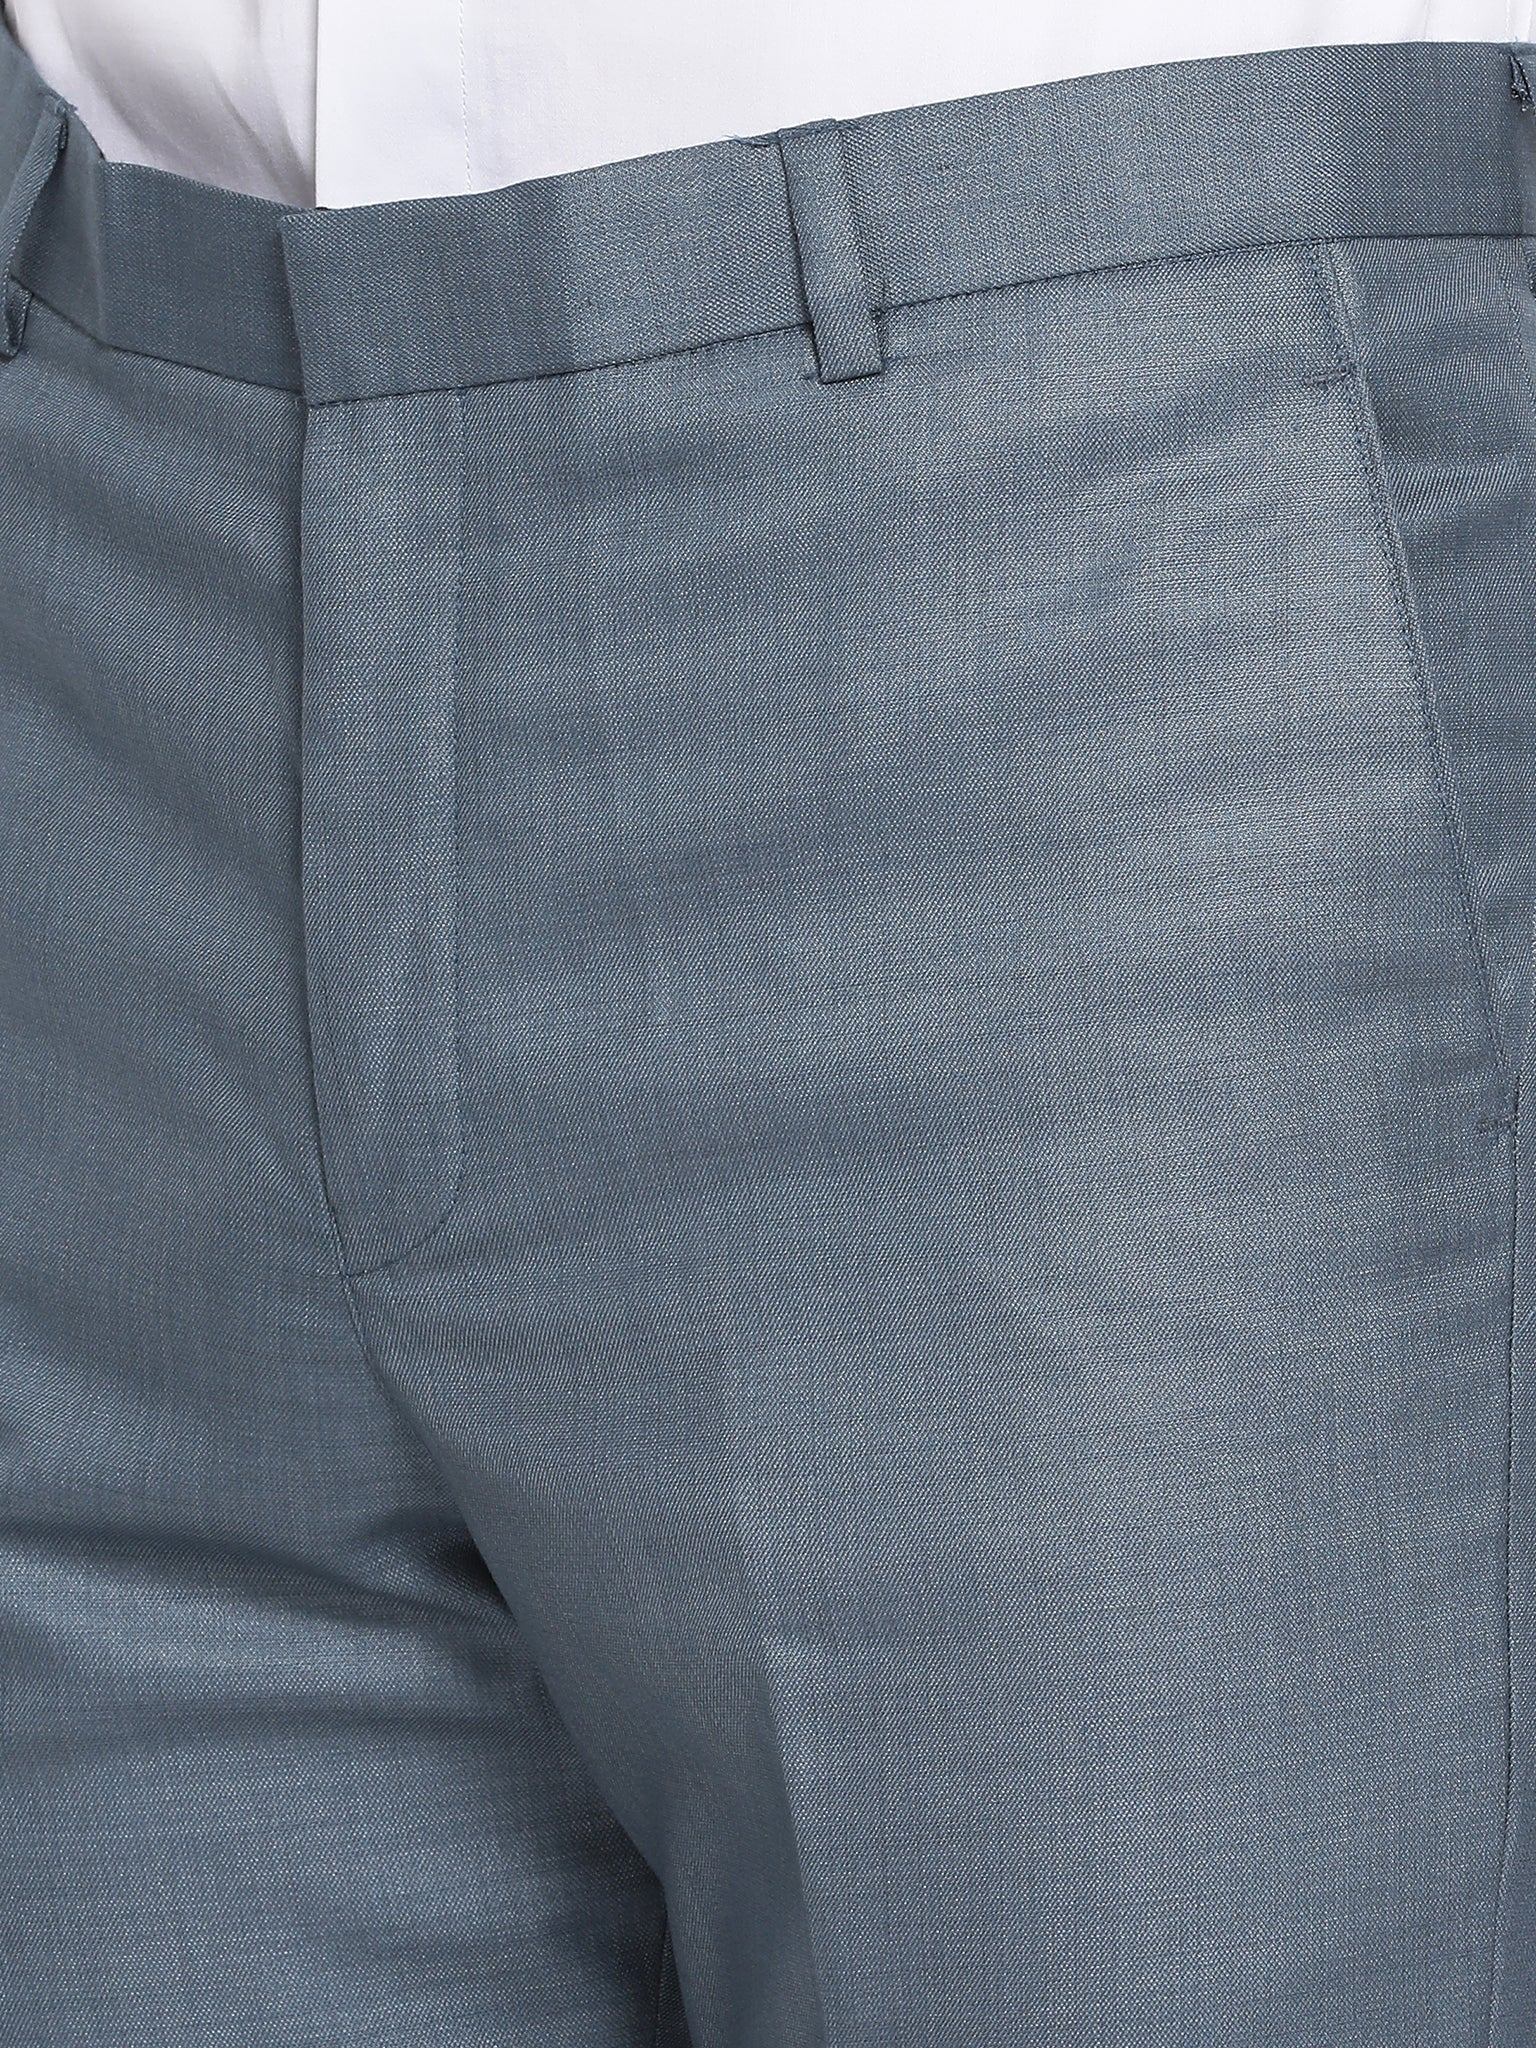 Slim Fit Stone Blue Suit Pant